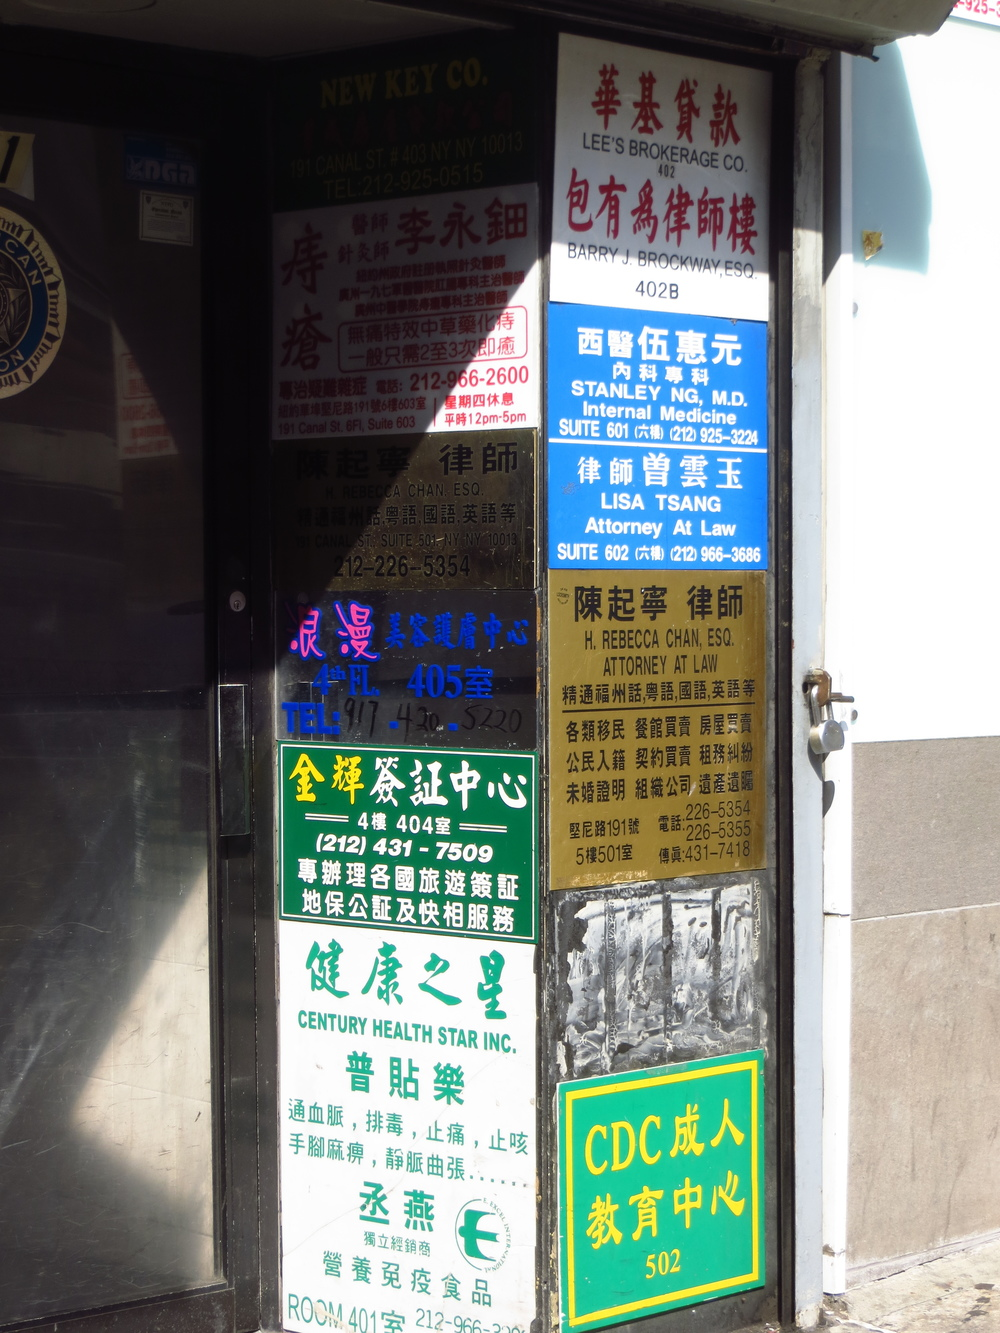 Chinatown businesses